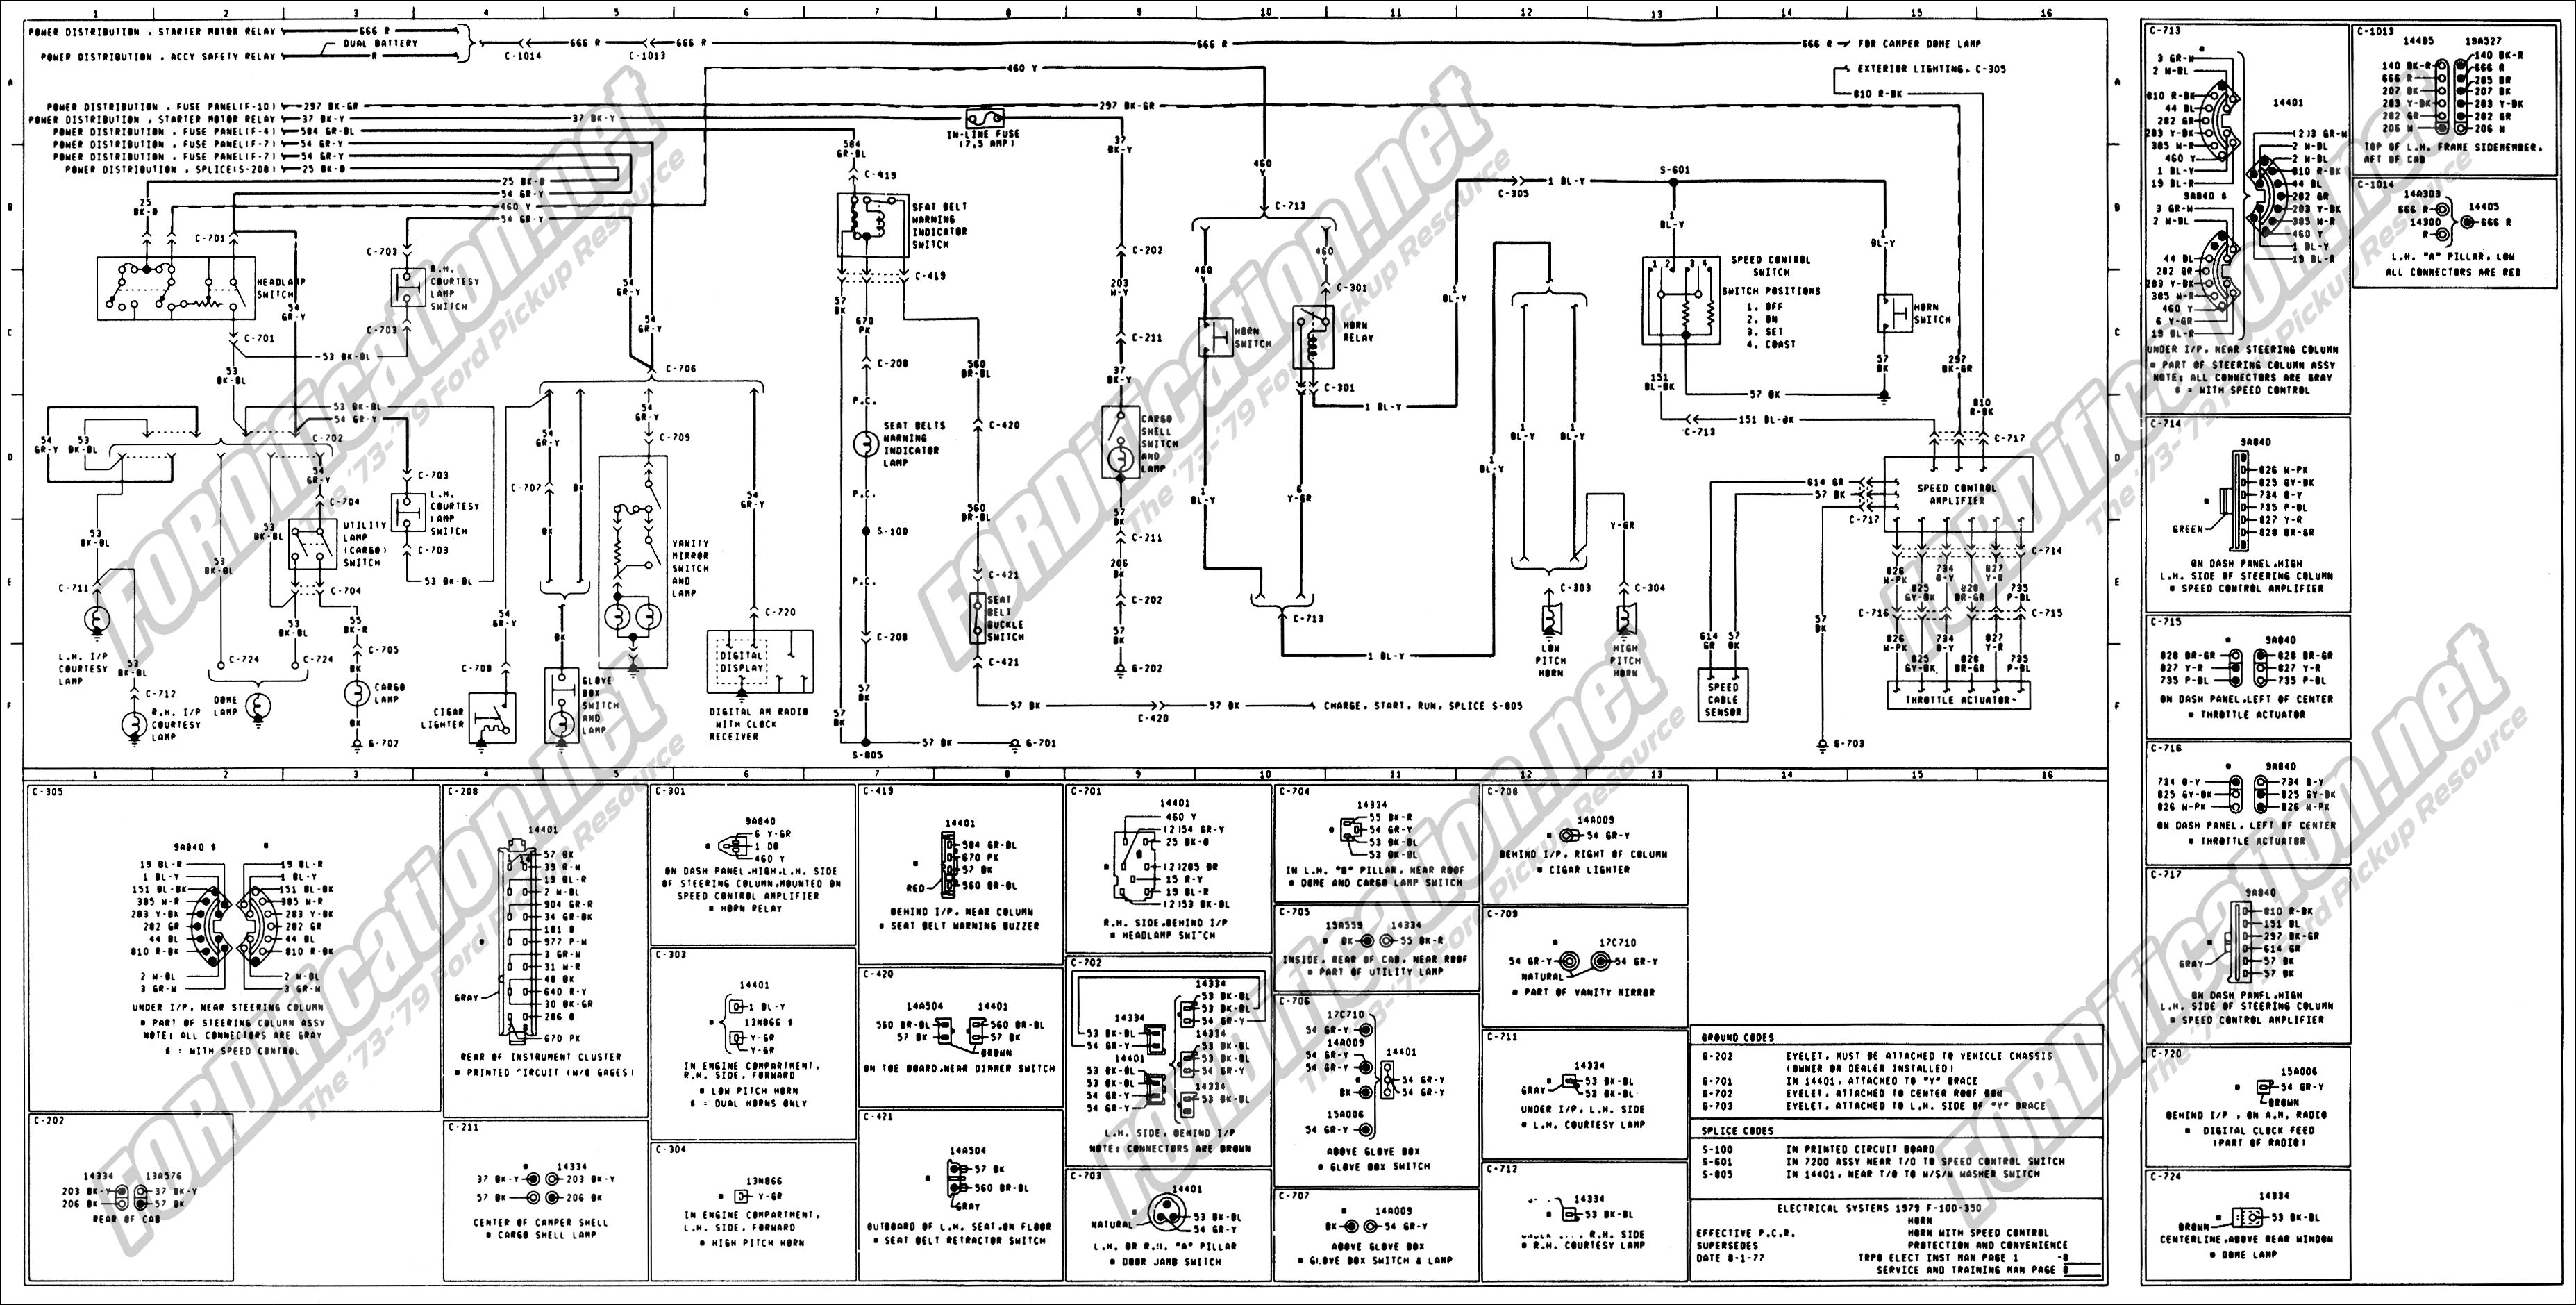 wiring_79master_8of9 1973 1979 ford truck wiring diagrams & schematics fordification net 1978 bronco fuse box diagram at alyssarenee.co